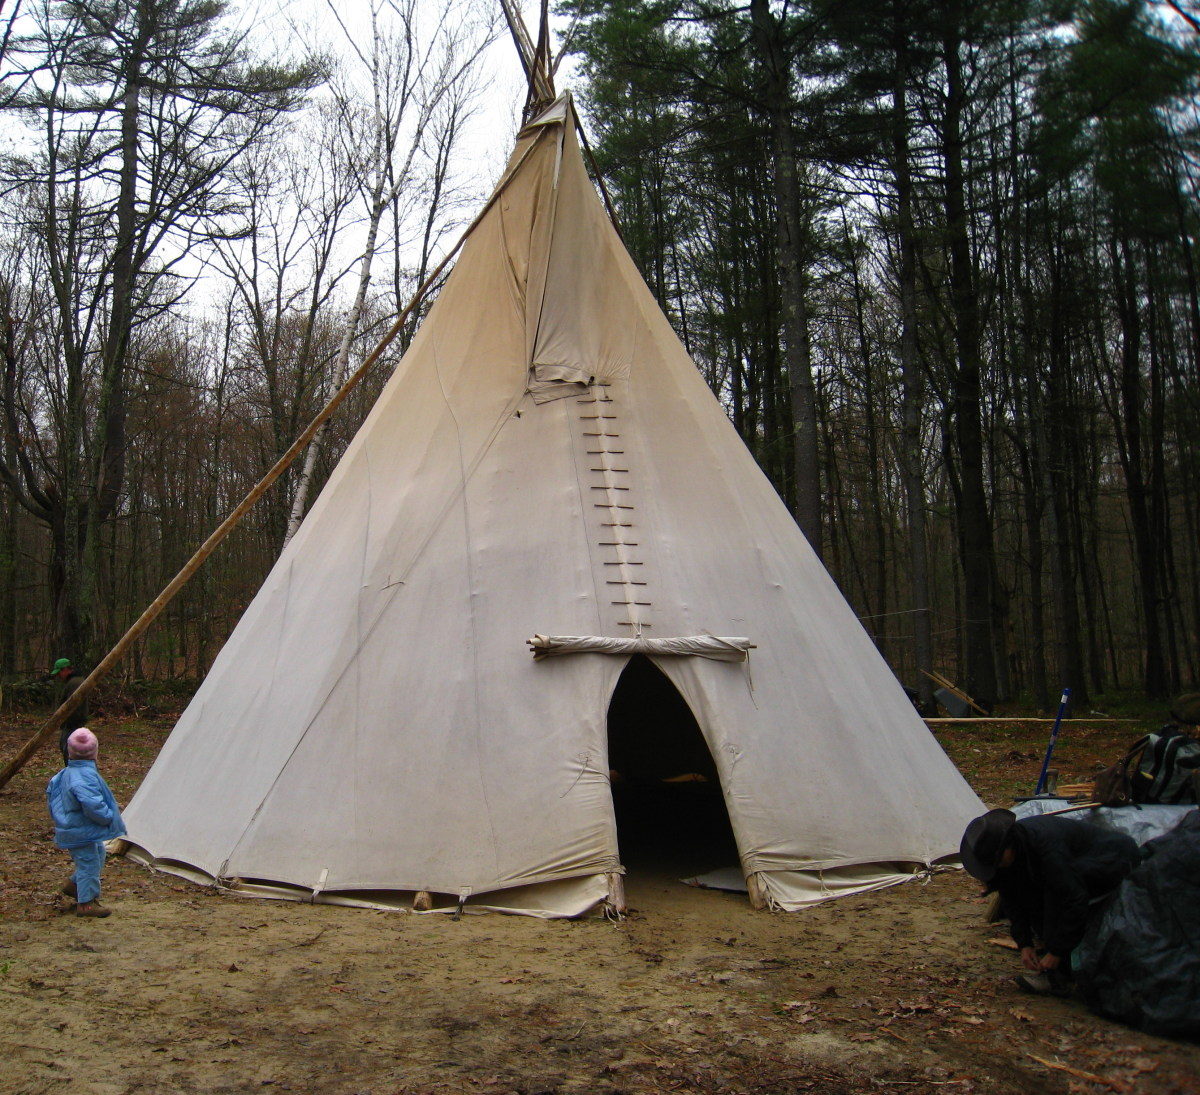 This tipi is used for Peyote ceremonies in the Native American Church.